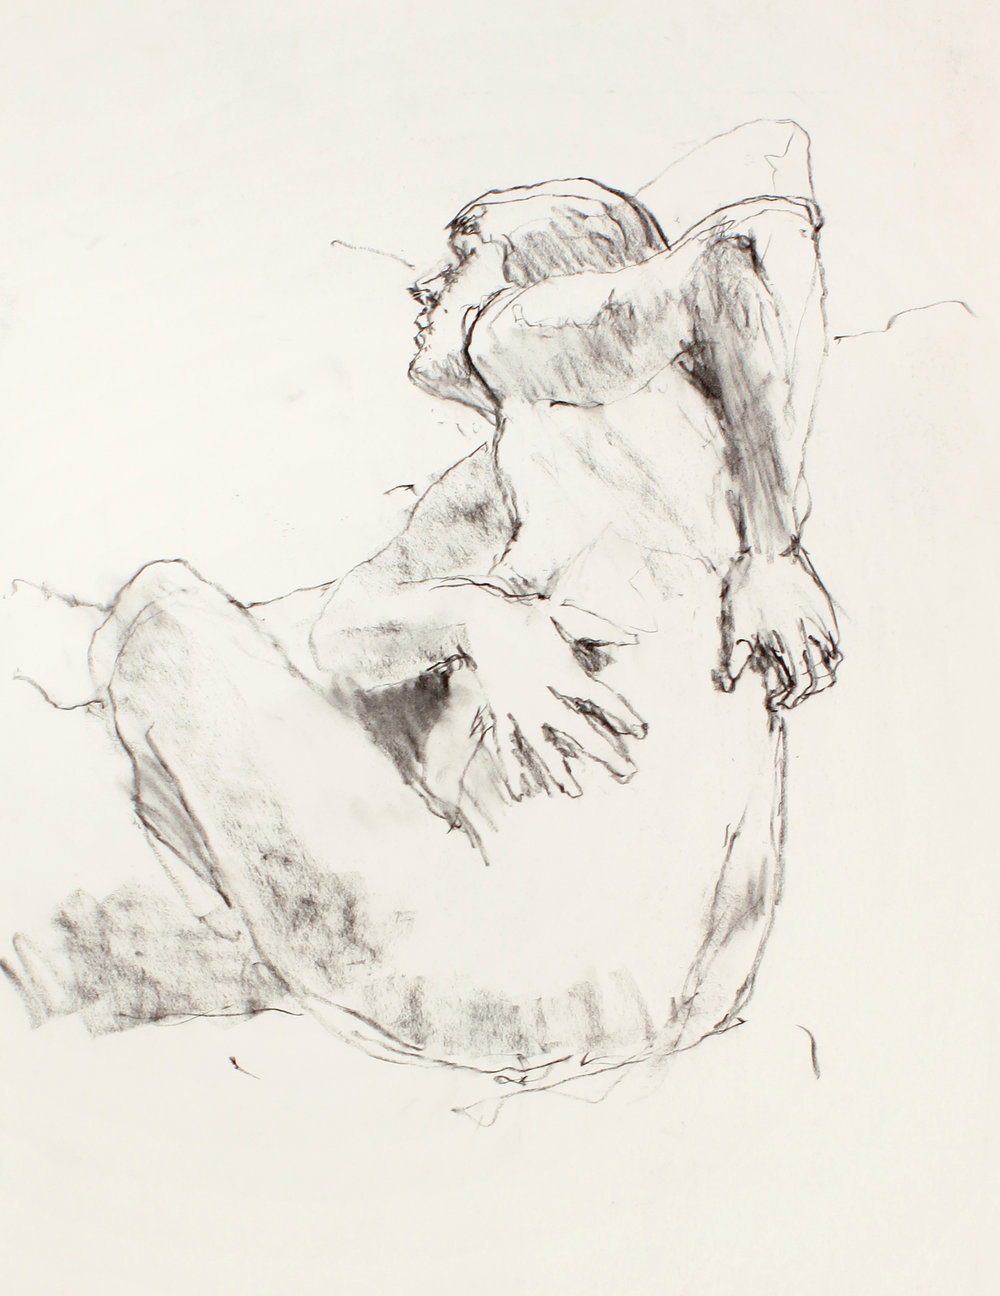 2003_Seated_Nude_with_Hands_on_Back_charcoal_on_paper_23x17in_WPF447.jpg